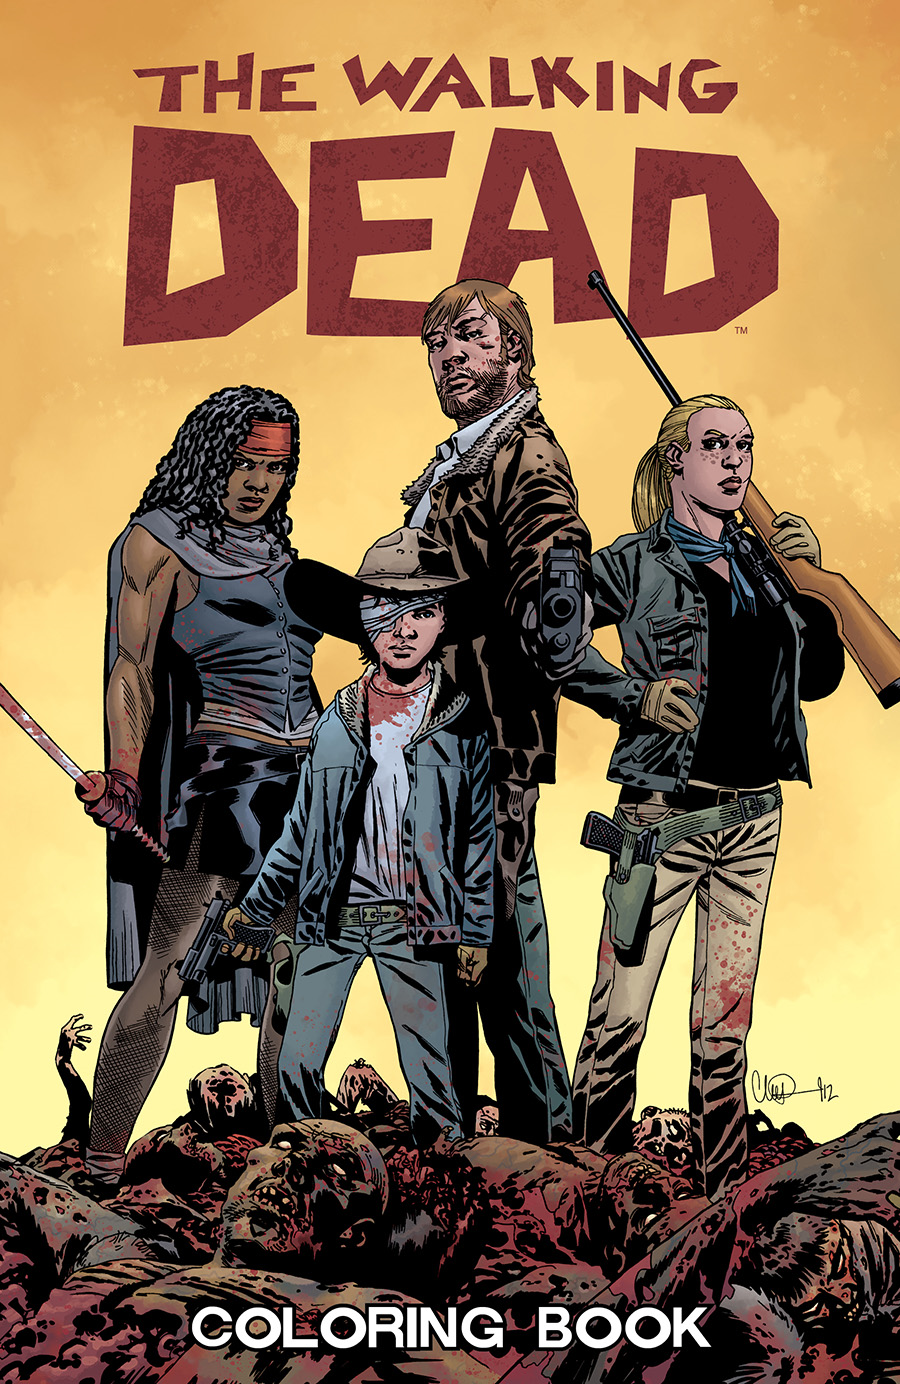 The Walking Dead Coloring Book